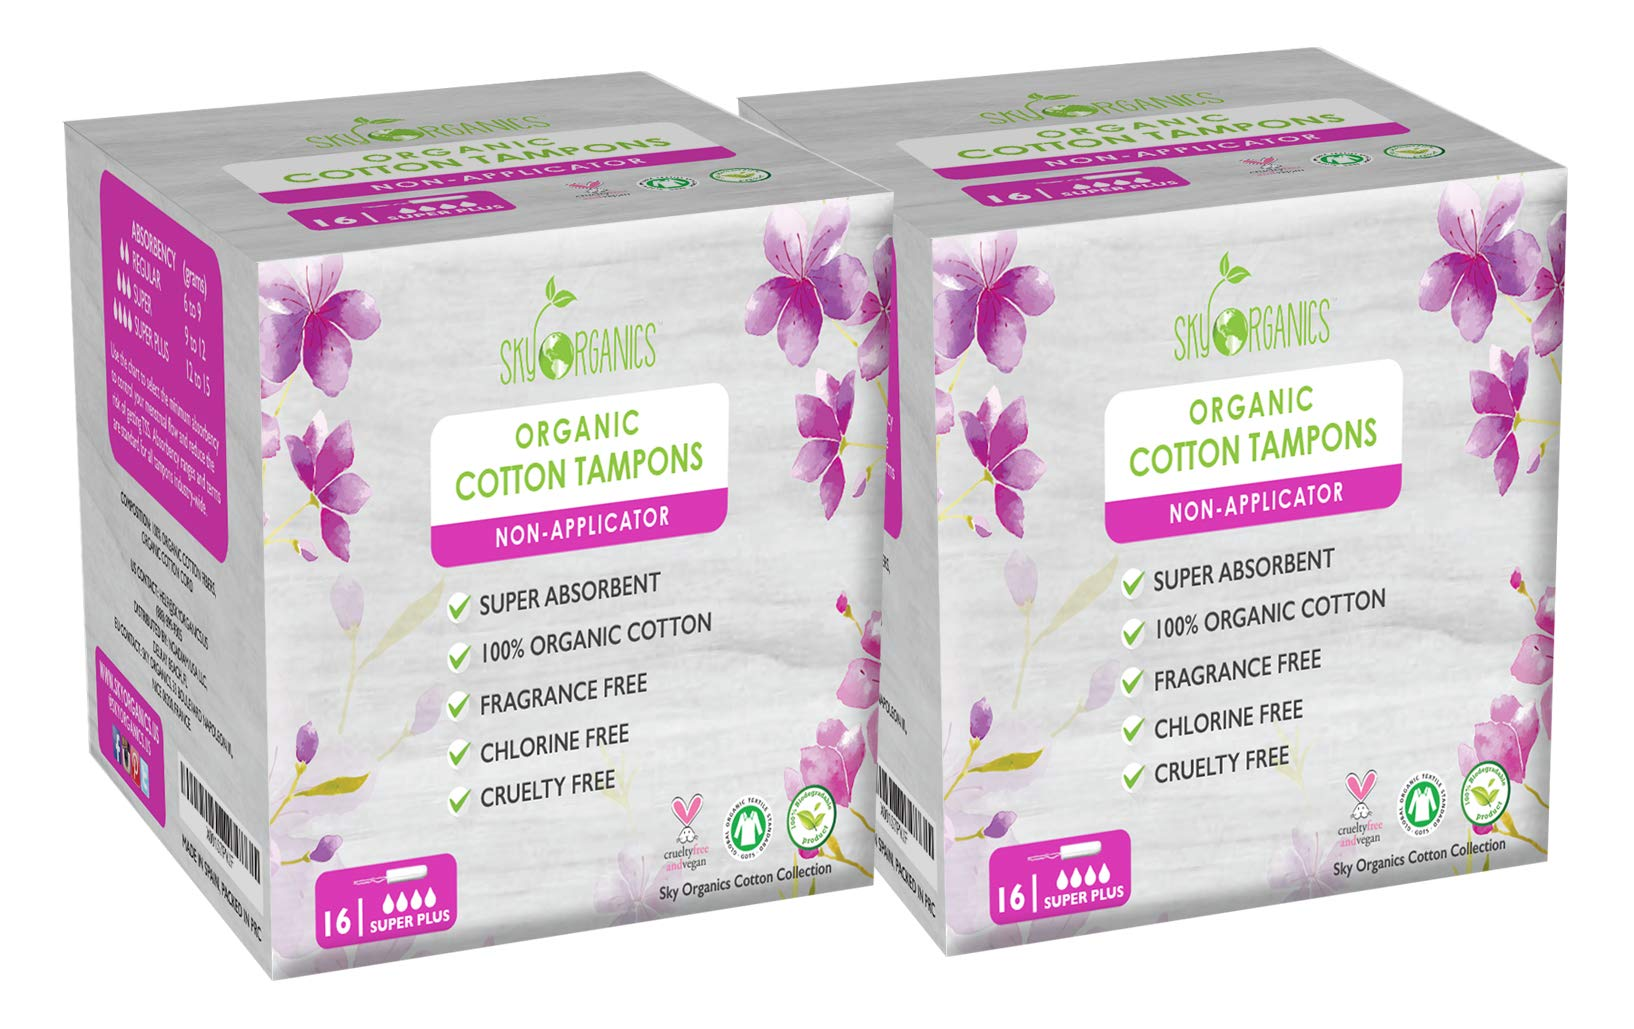 Organic Cotton Non-Applicator Tampons (Super Plus + Absorbency) by Sky Organics (2 Pack)- Chemical-Free, Vegan & Cruelty-Free, Biodegradable Plant Based Feminine Care, Natural Digital Tampons (32 ct)